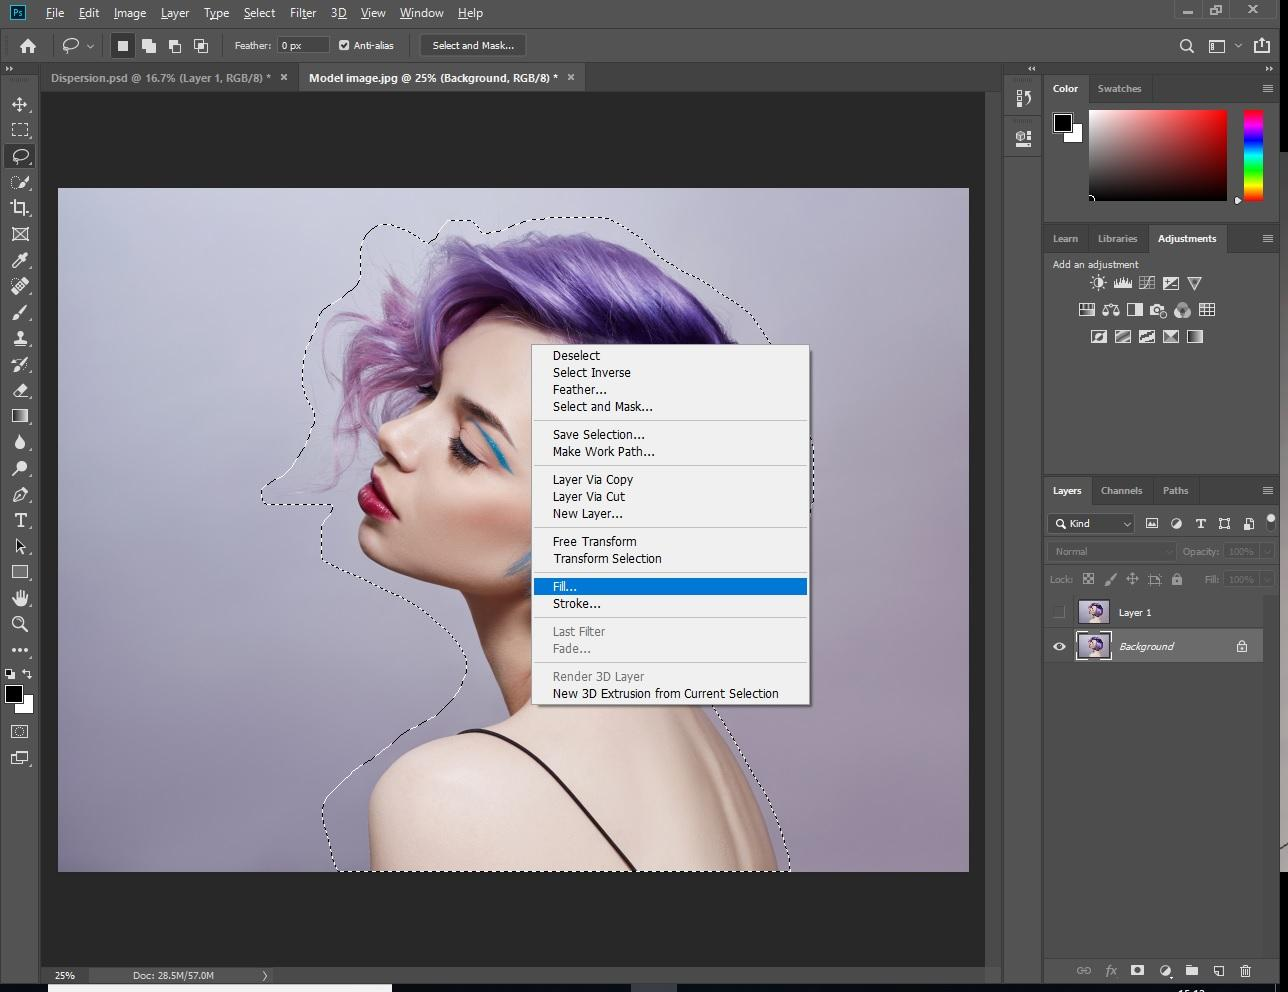 How To Create Dispersion Effect In Photoshop - Digital Arts